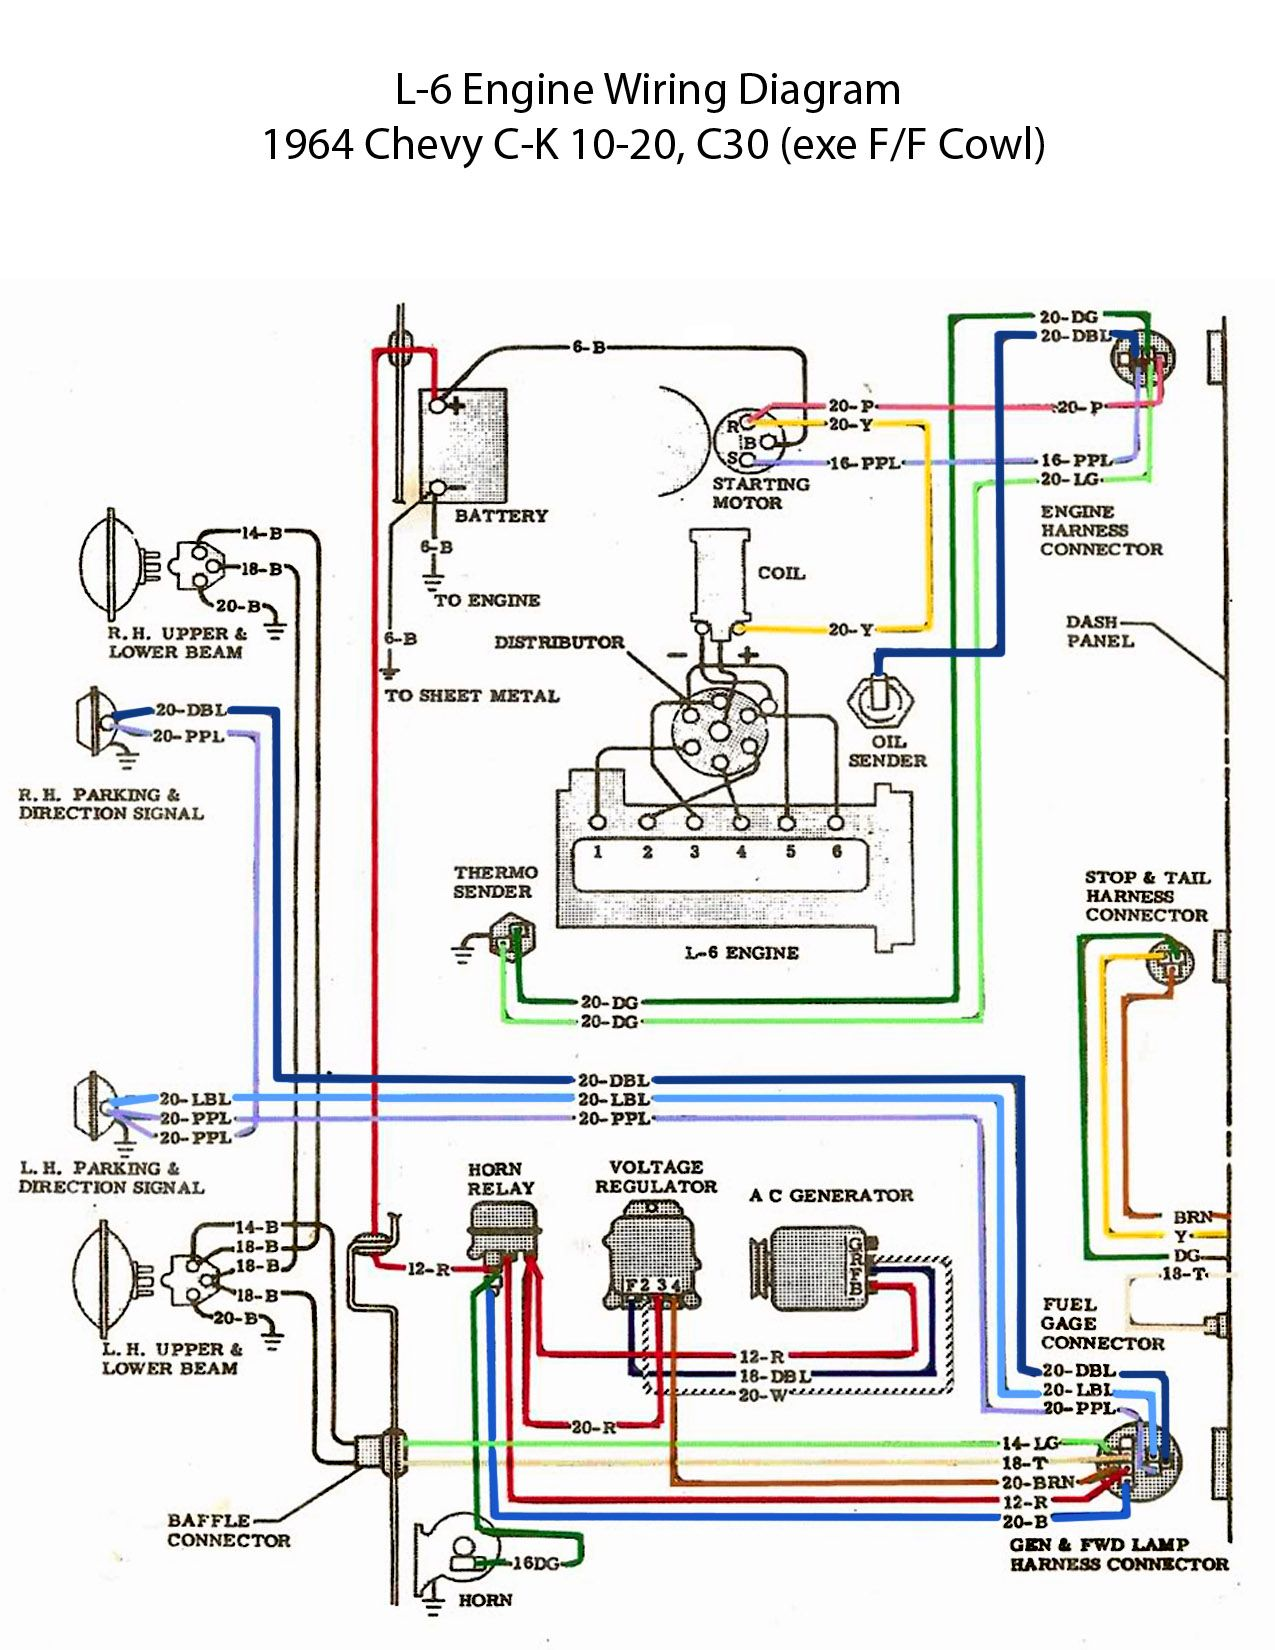 ELECTRIC: L-6 Engine Wiring Diagram | Chevy trucks, 1963 chevy truck, ChevyPinterest